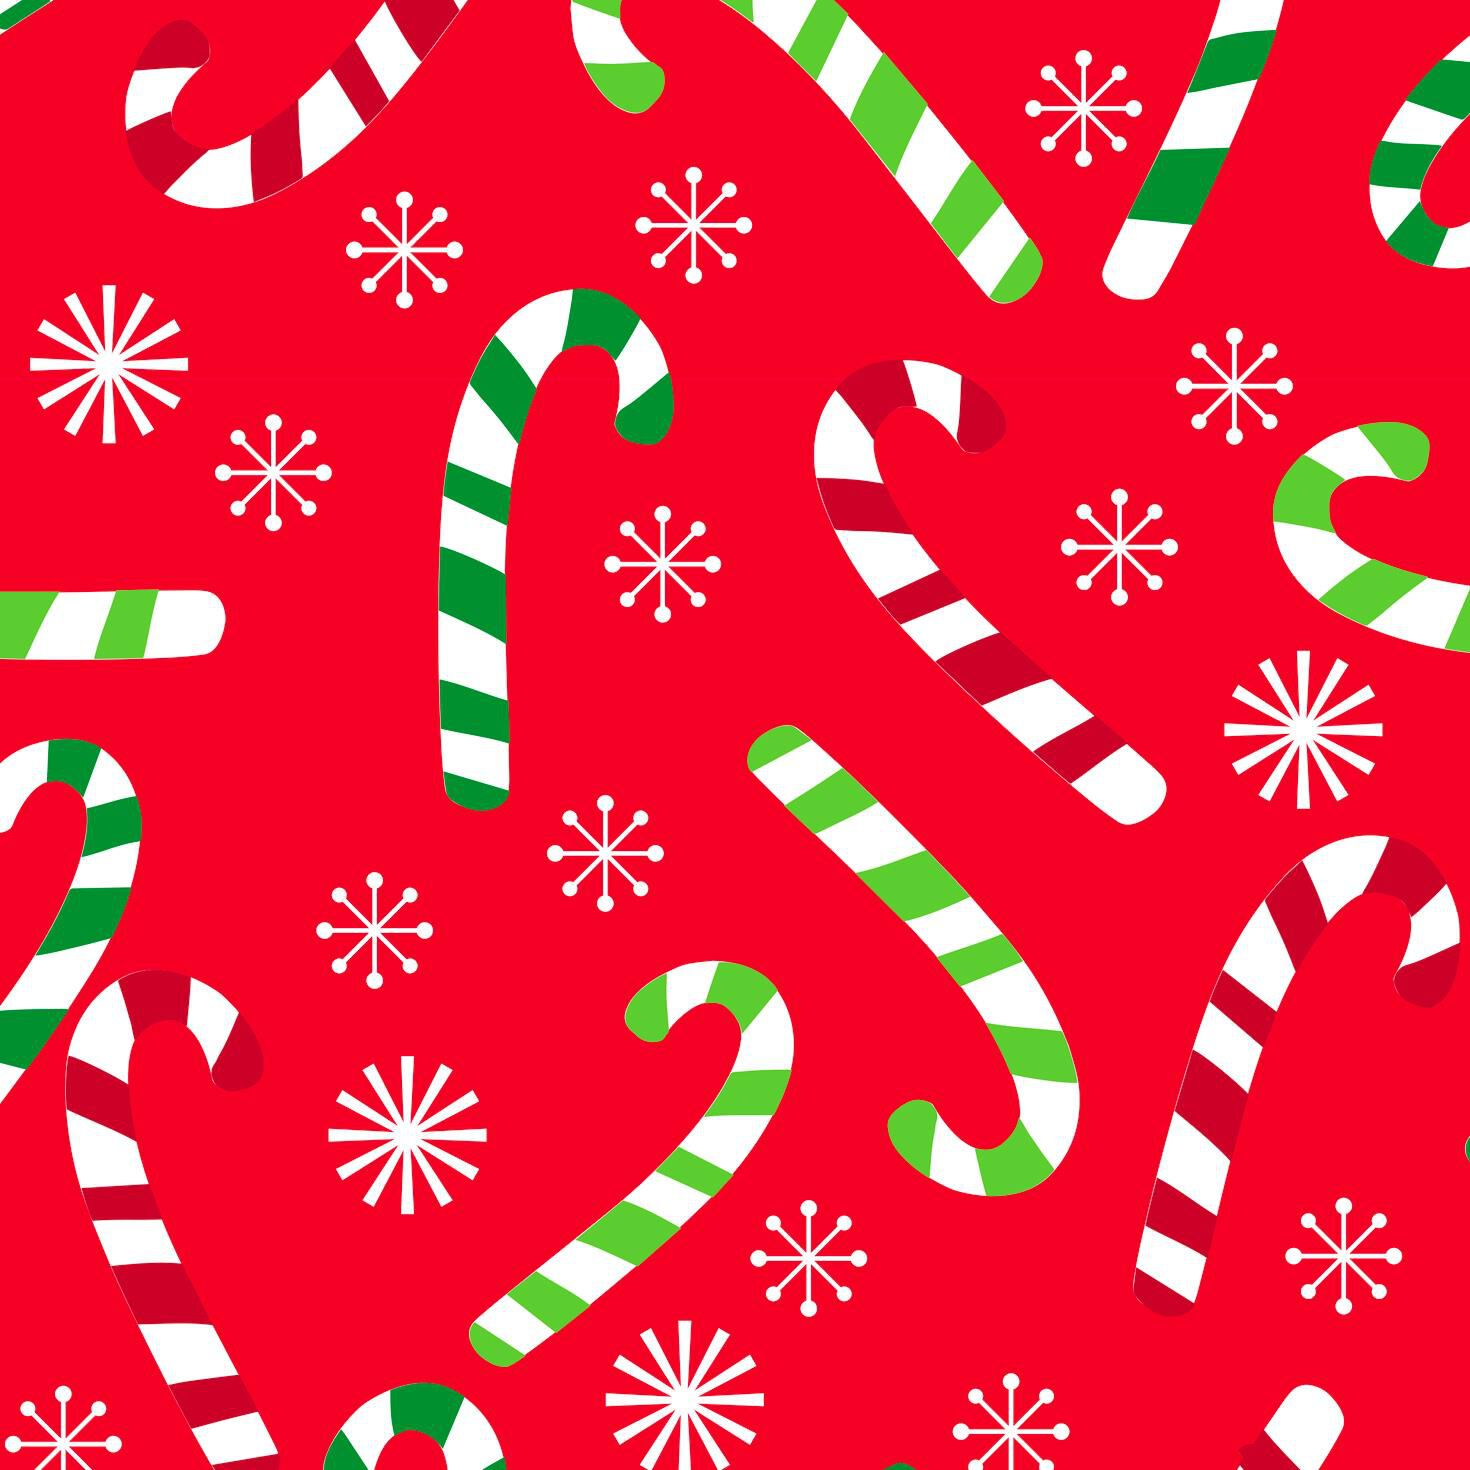 candy canes on red jumbo christmas wrapping paper roll 100 sq ft